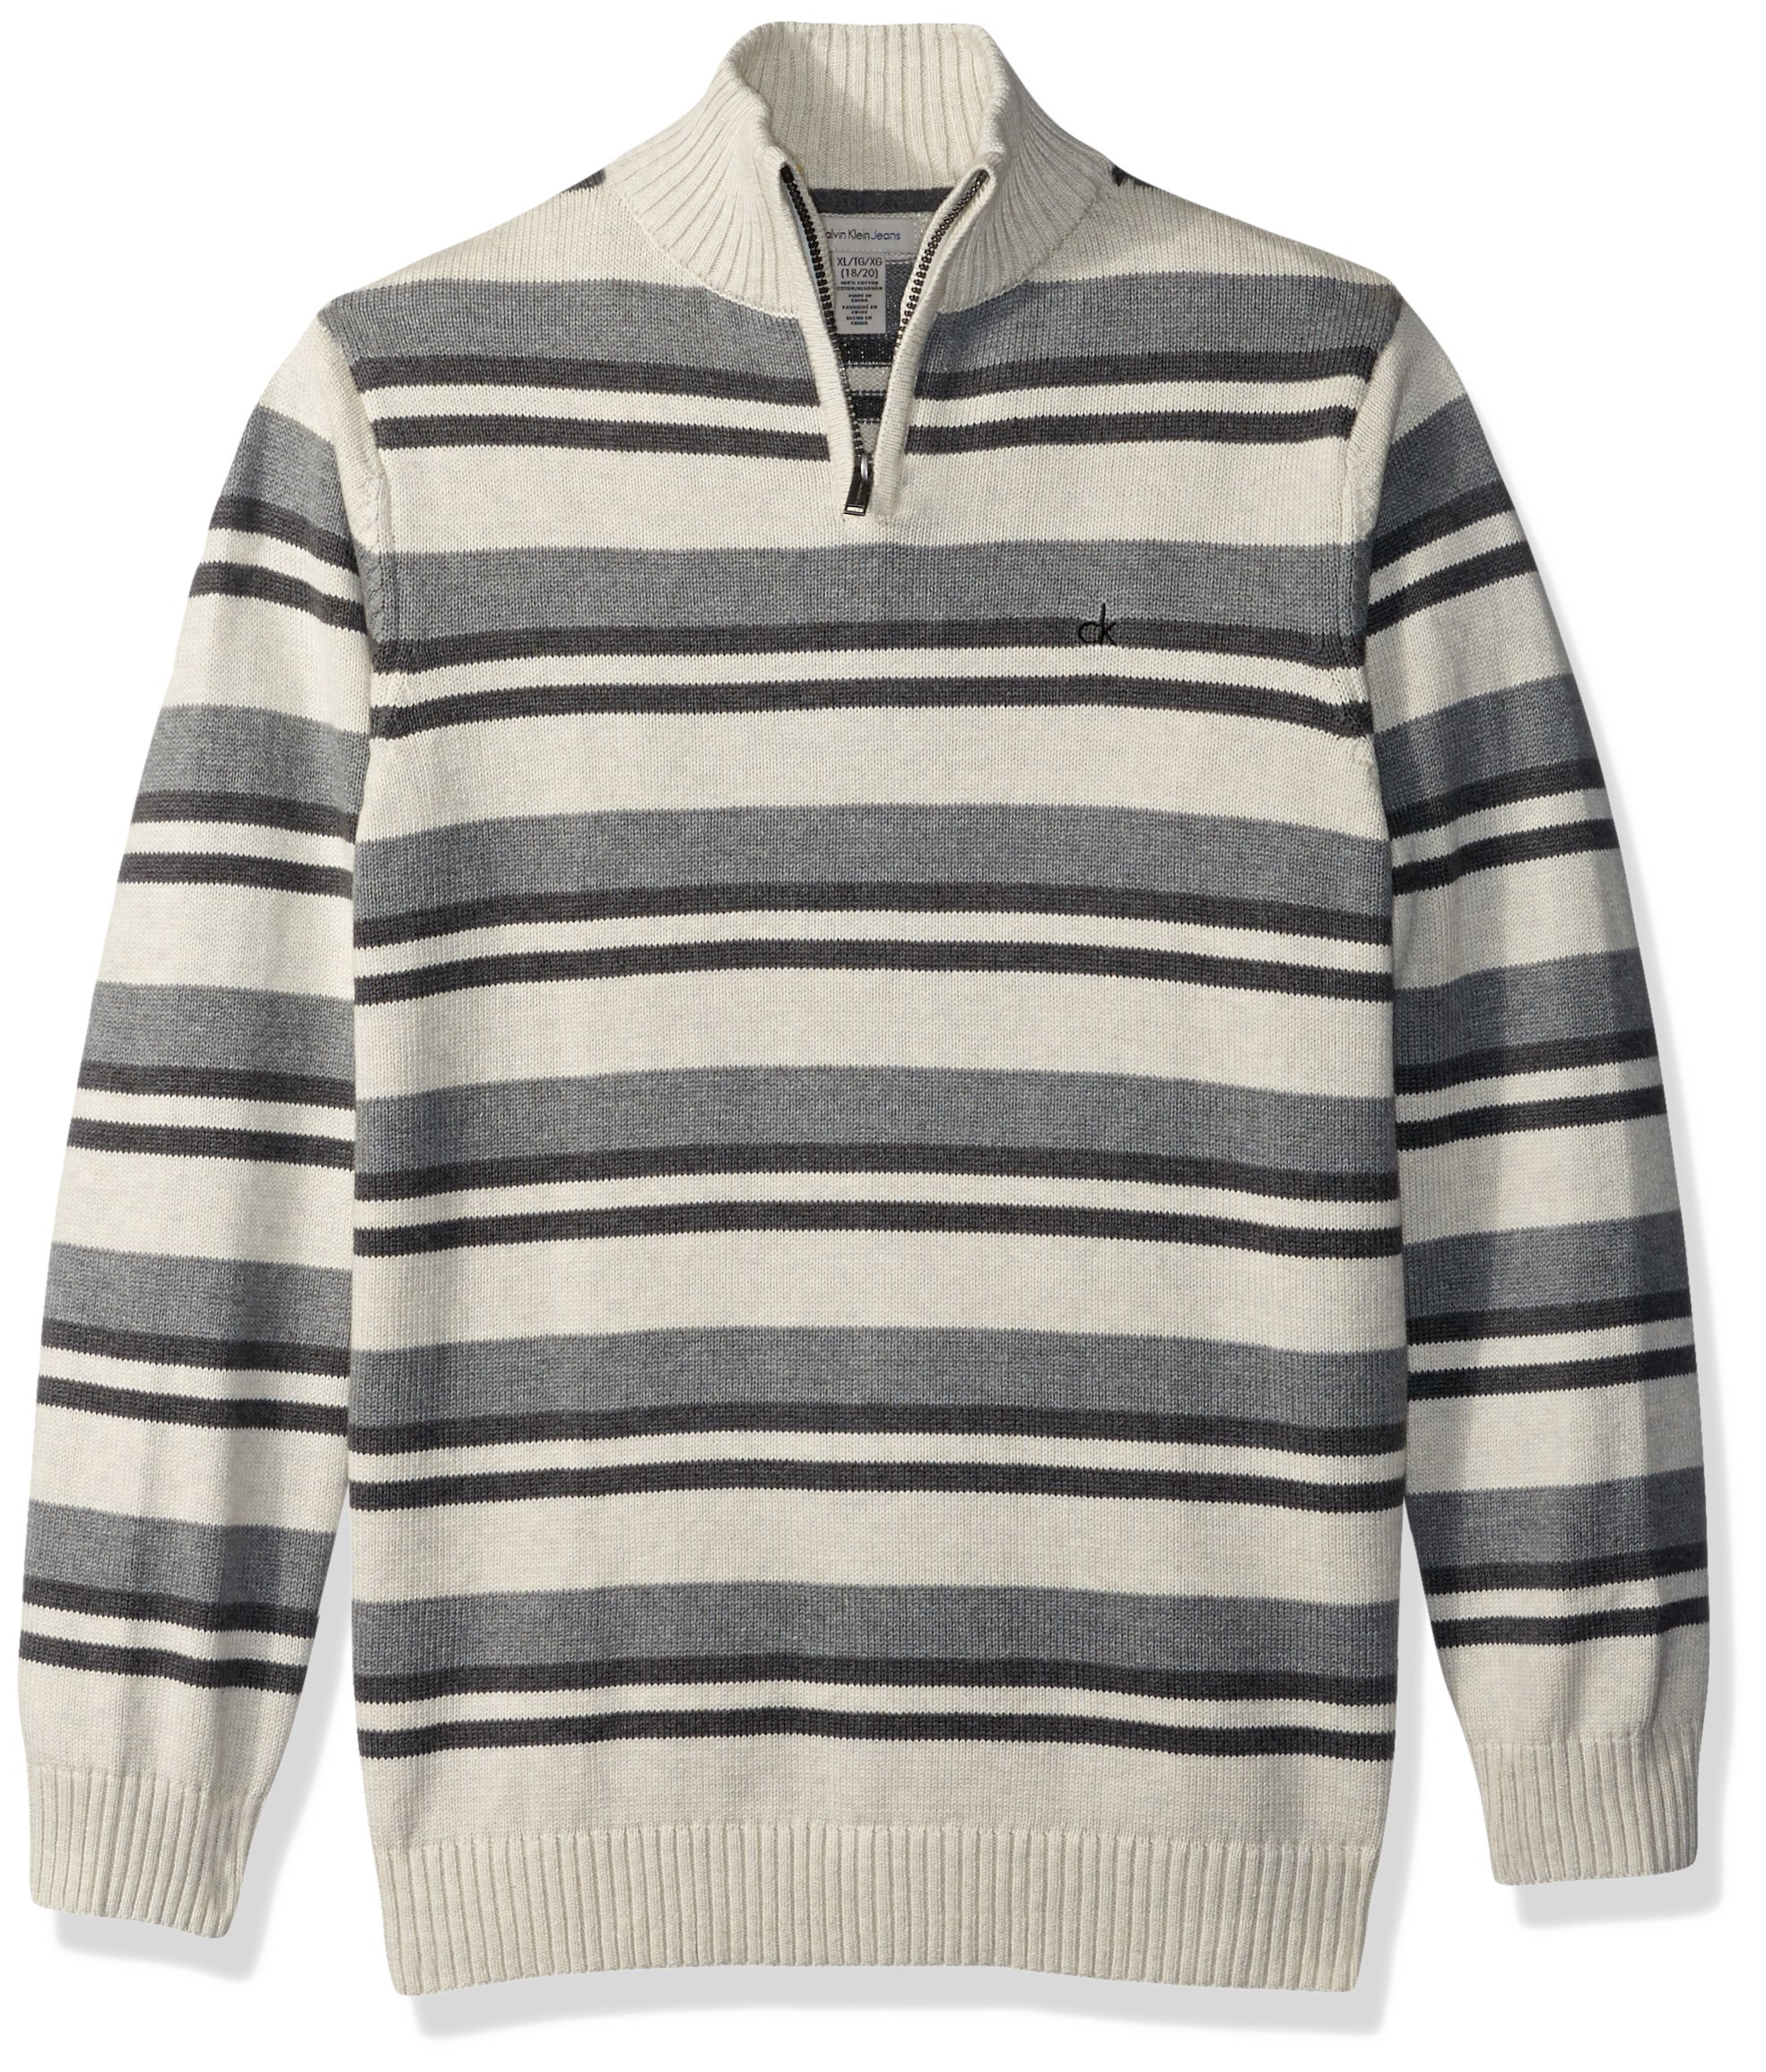 Calvin Klein Boys' Halt Stripe Half-Zip Sweater, Oatmeal Heather, 4